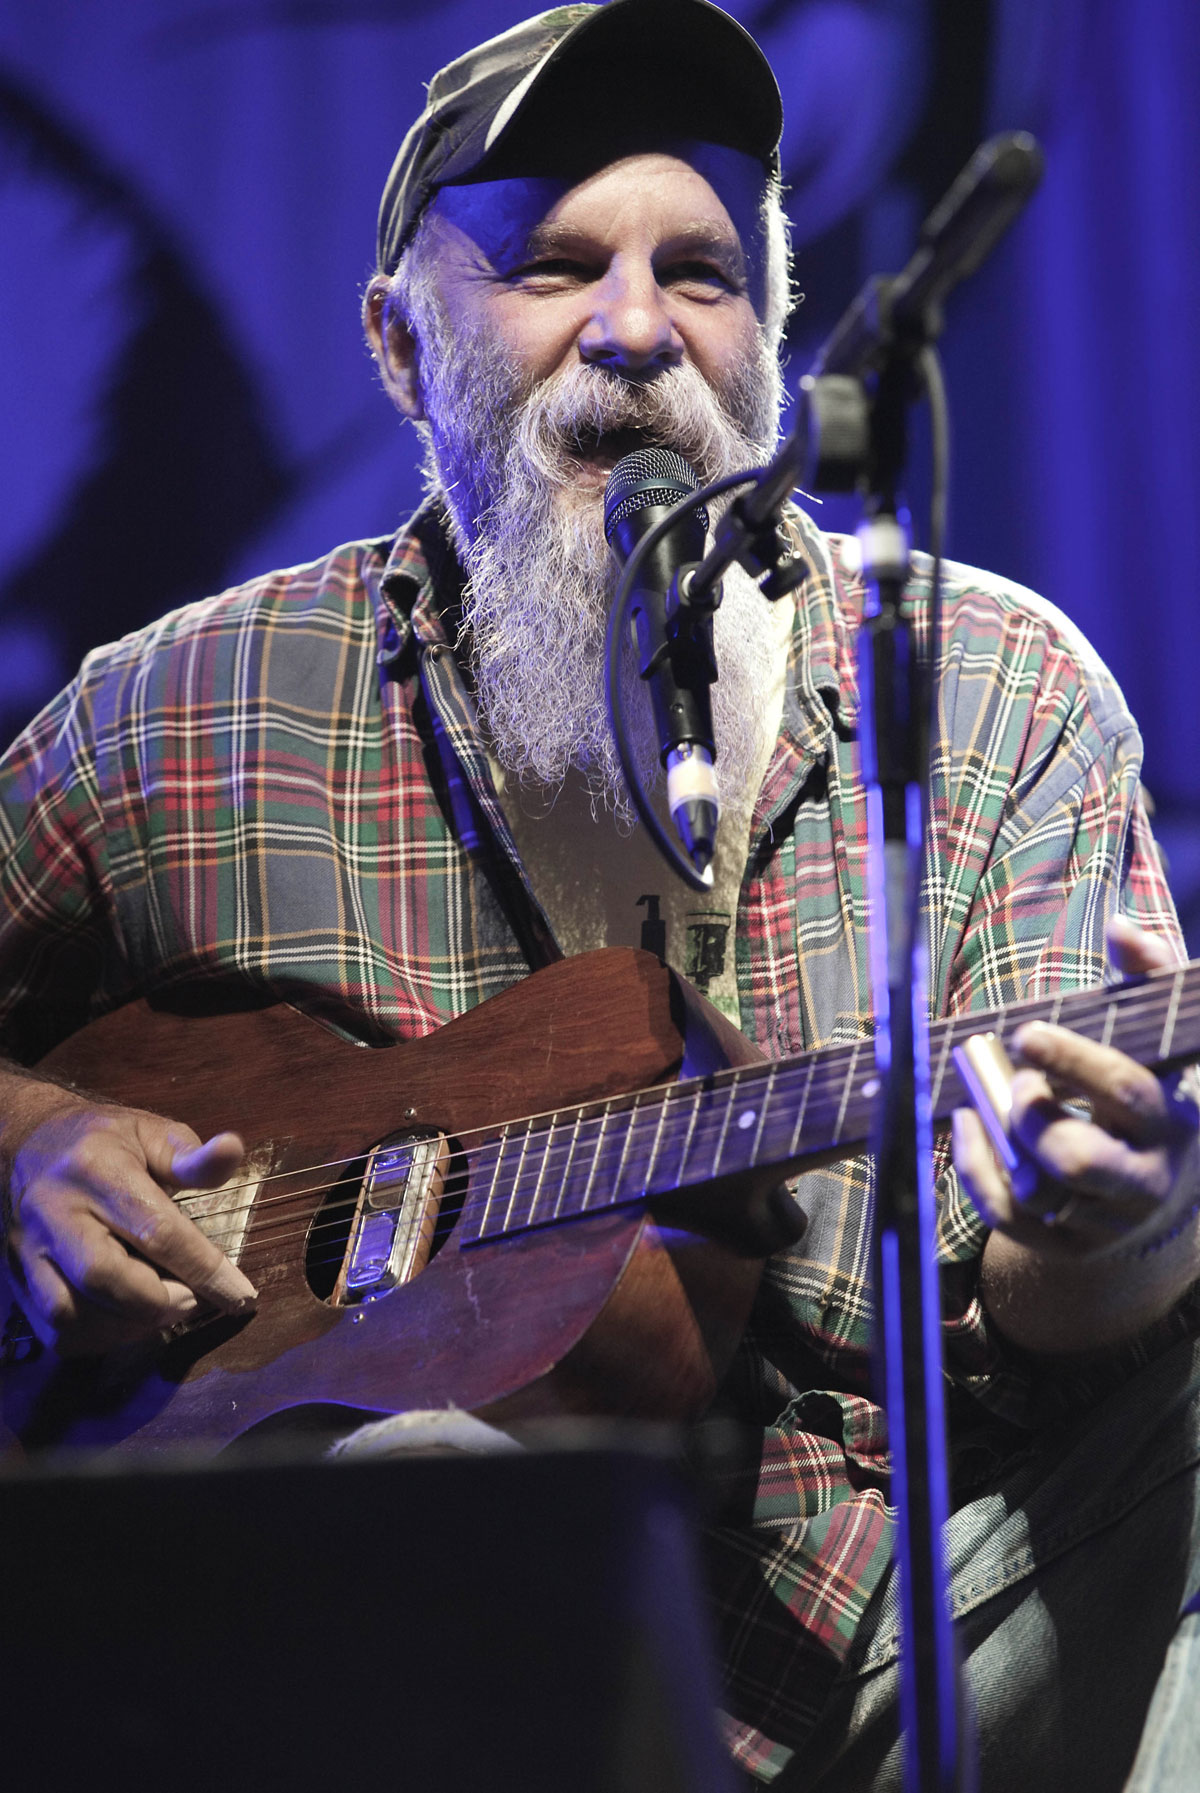 Seasick Steve: If I can't do what I want at my age, when can I?